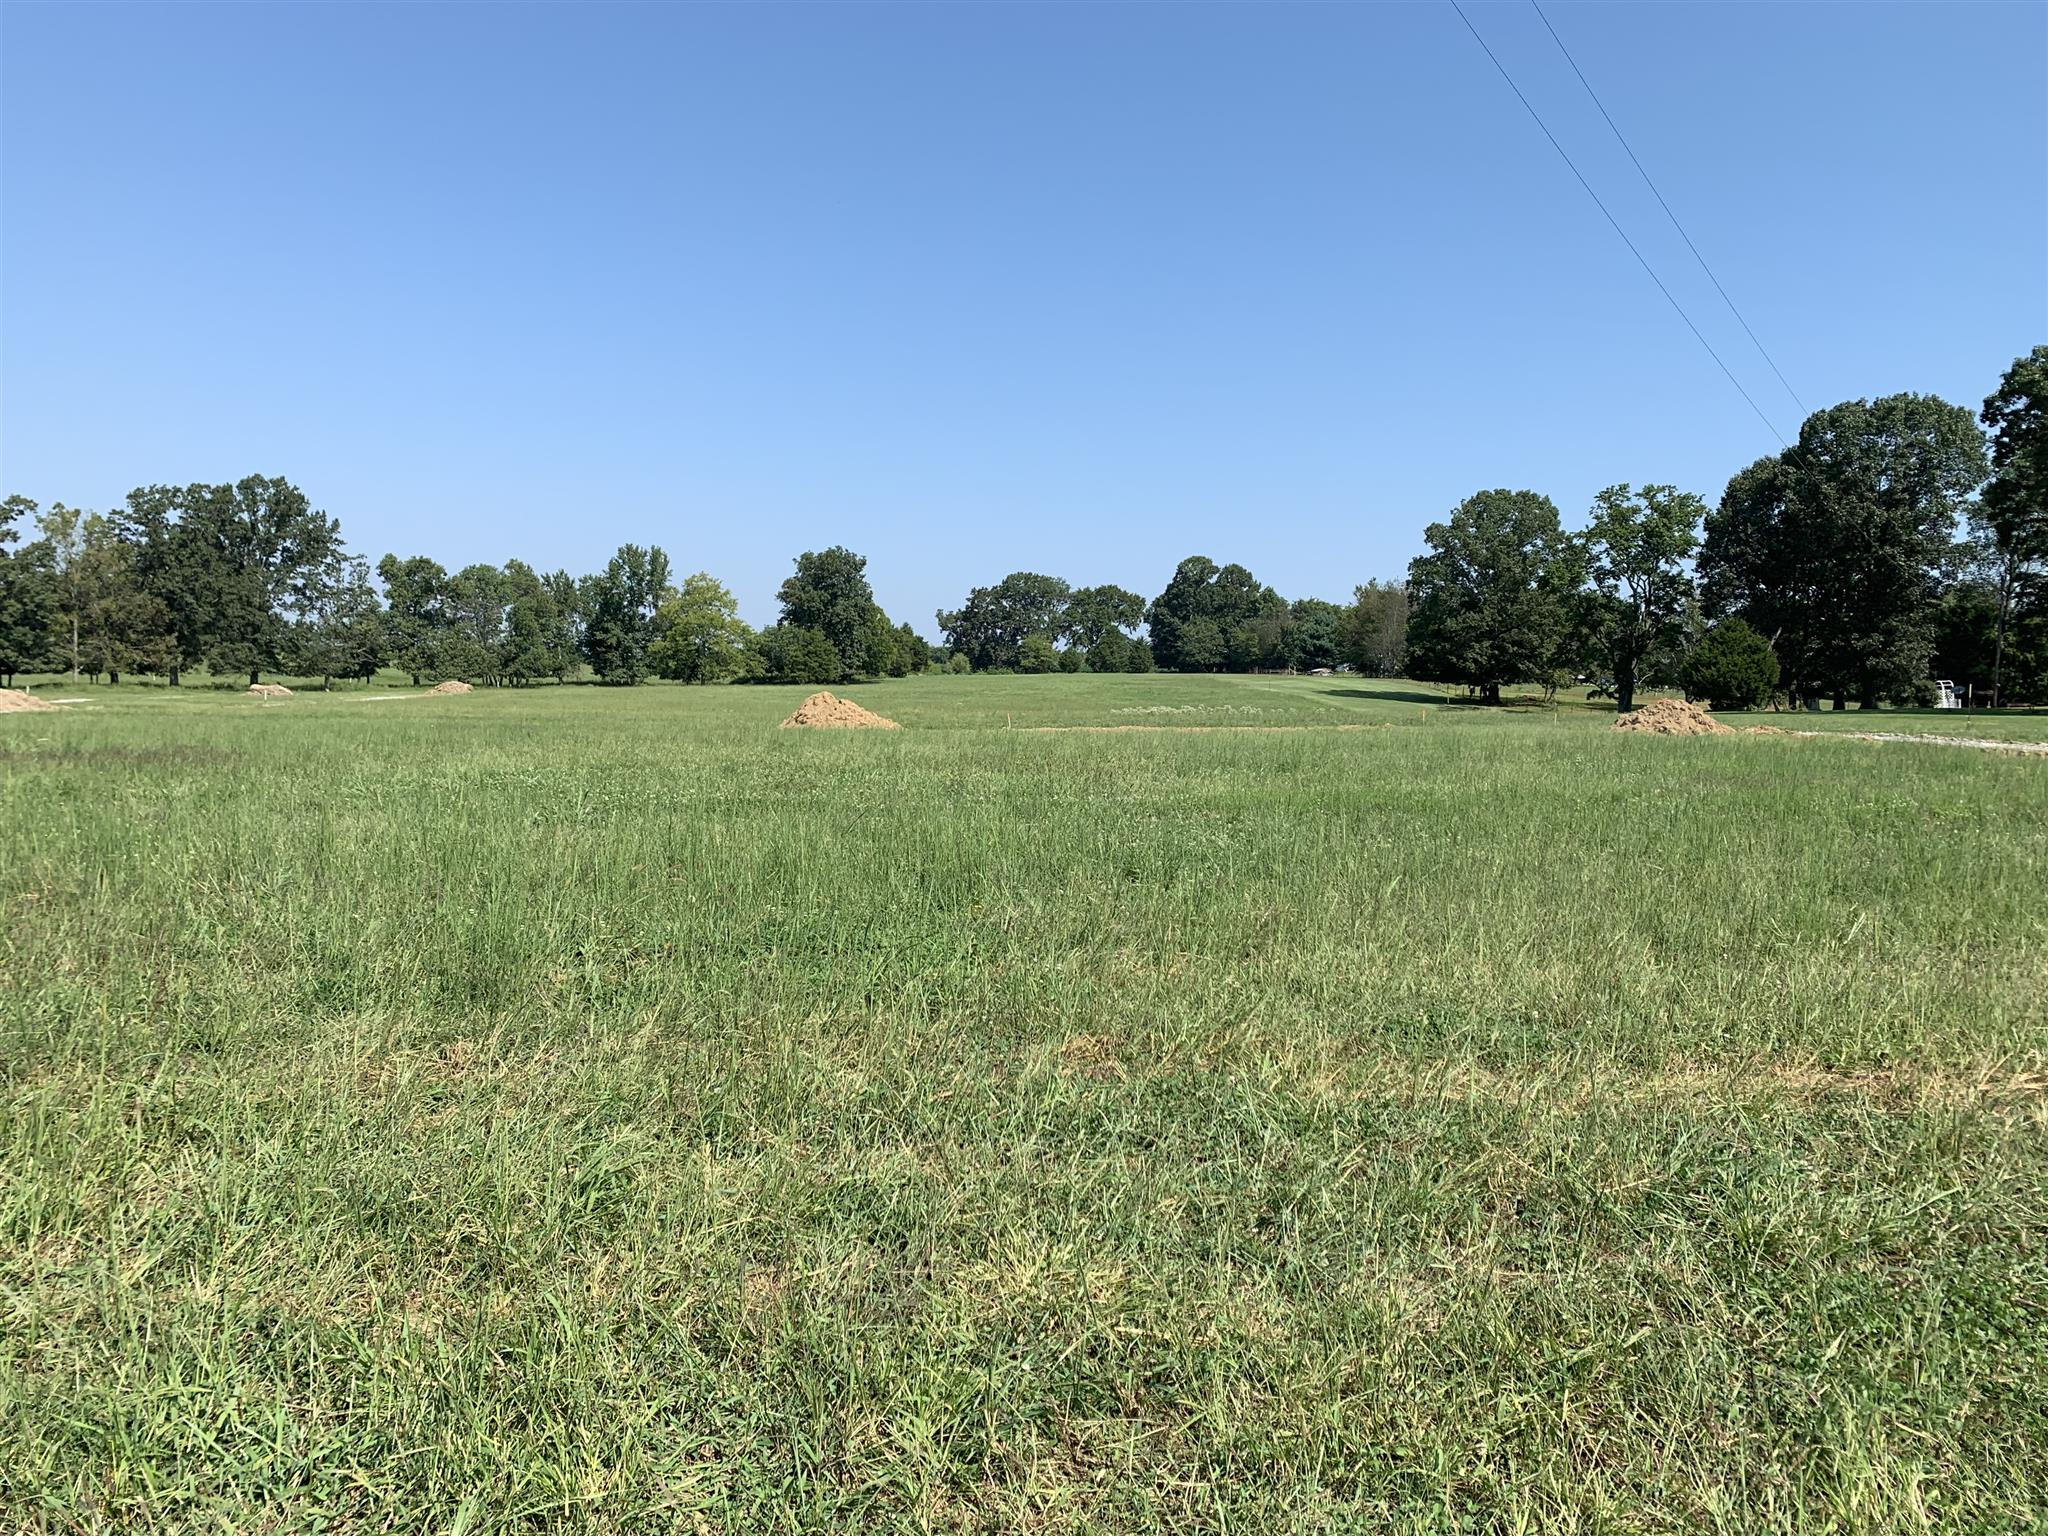 6616 Hwy 25 E Lot 2, Springfield, TN 37172 - Springfield, TN real estate listing